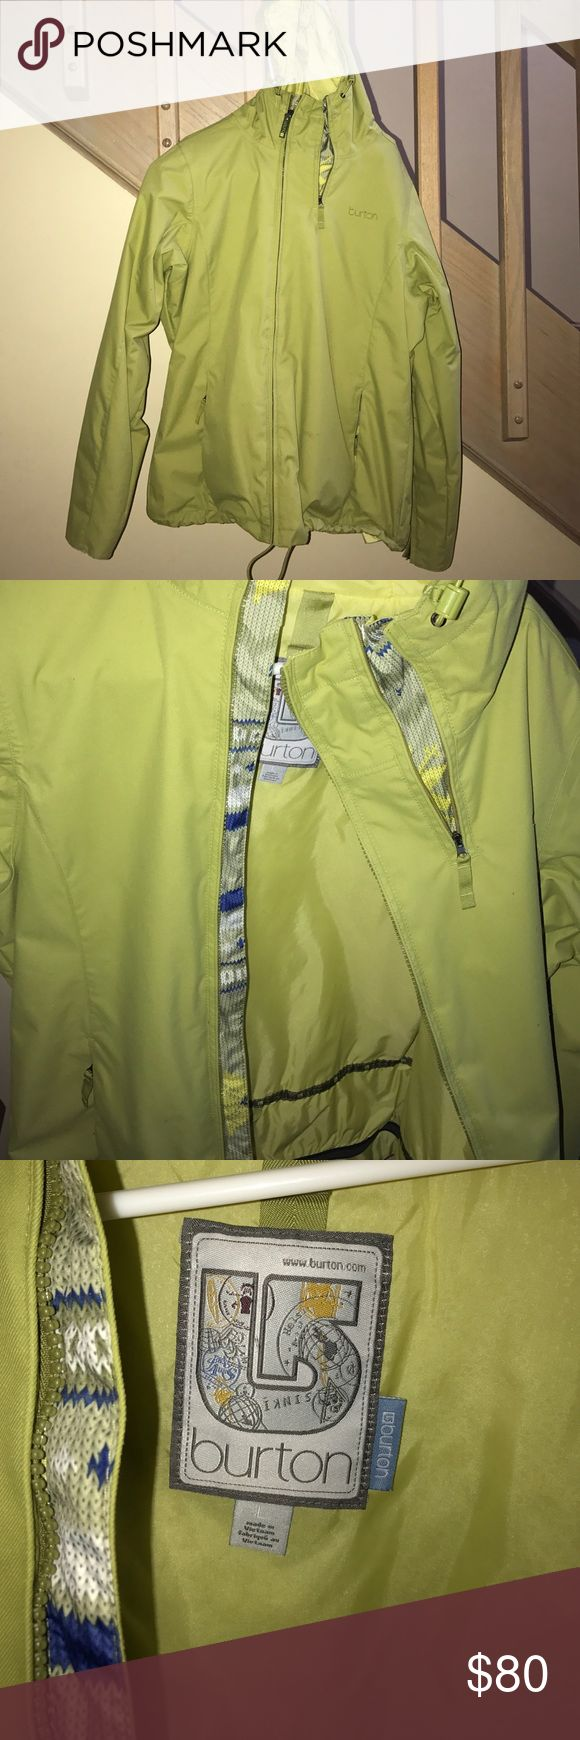 NEW Burton jacket. Worn once. NO TAGS. SIZE LARGE GREEN BURTON JACKET NO TAGS  worn once. GREAT condition. Great jacket!!! Burton Jackets & Coats